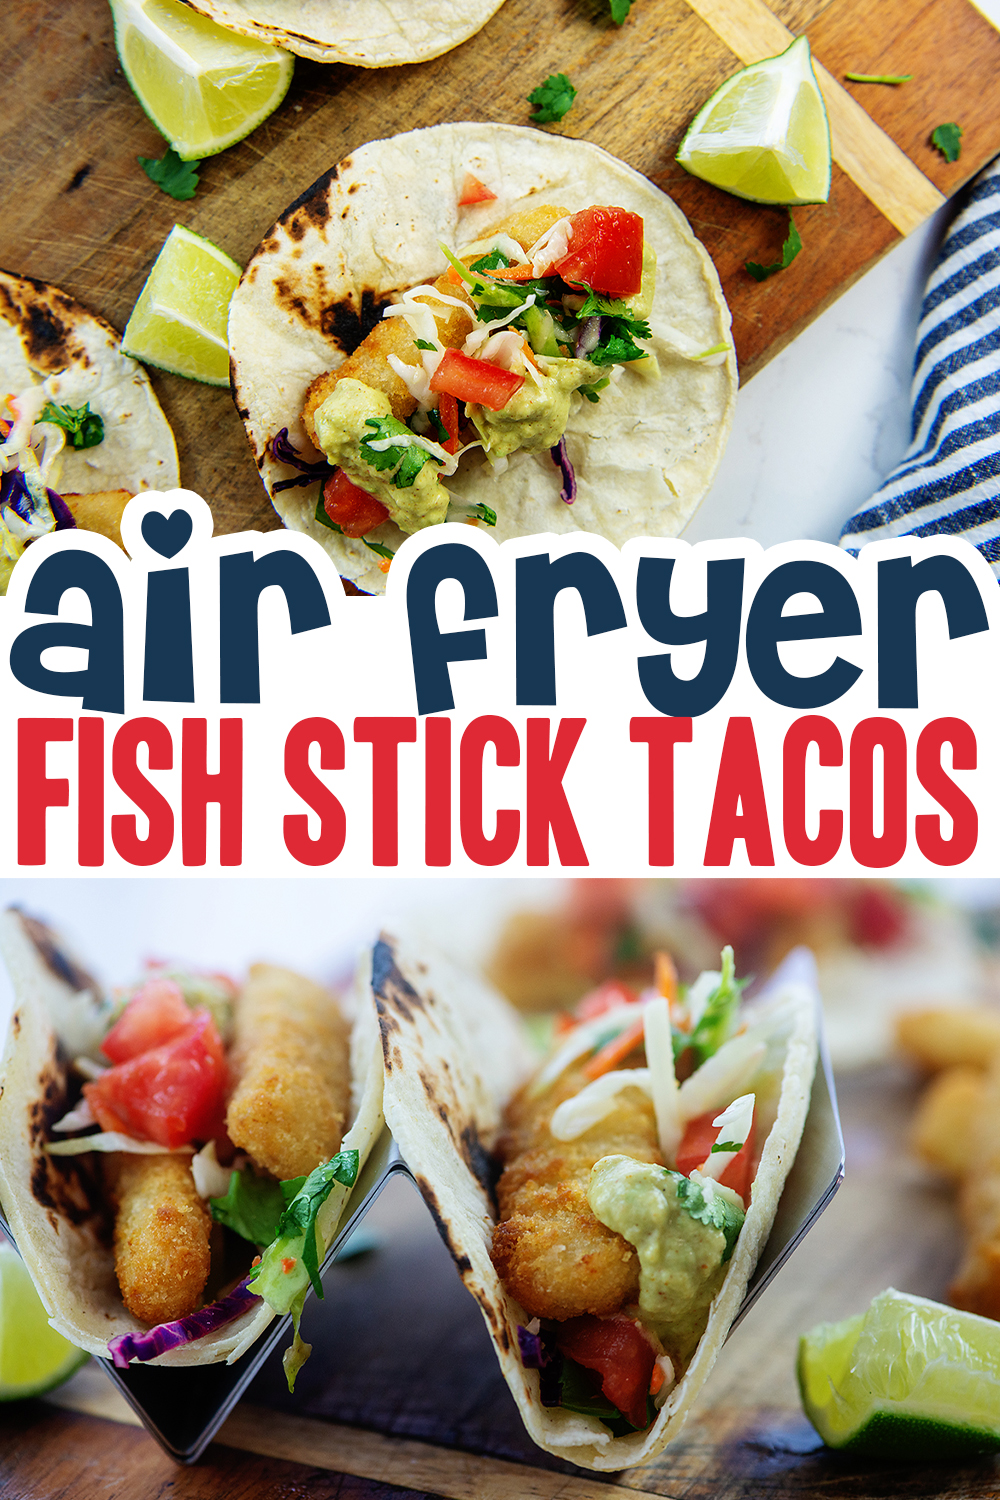 Crispy and coated with perfect toppings, these fish tacos are a great lunch or dinner!  They are so easy to make you will want them often!